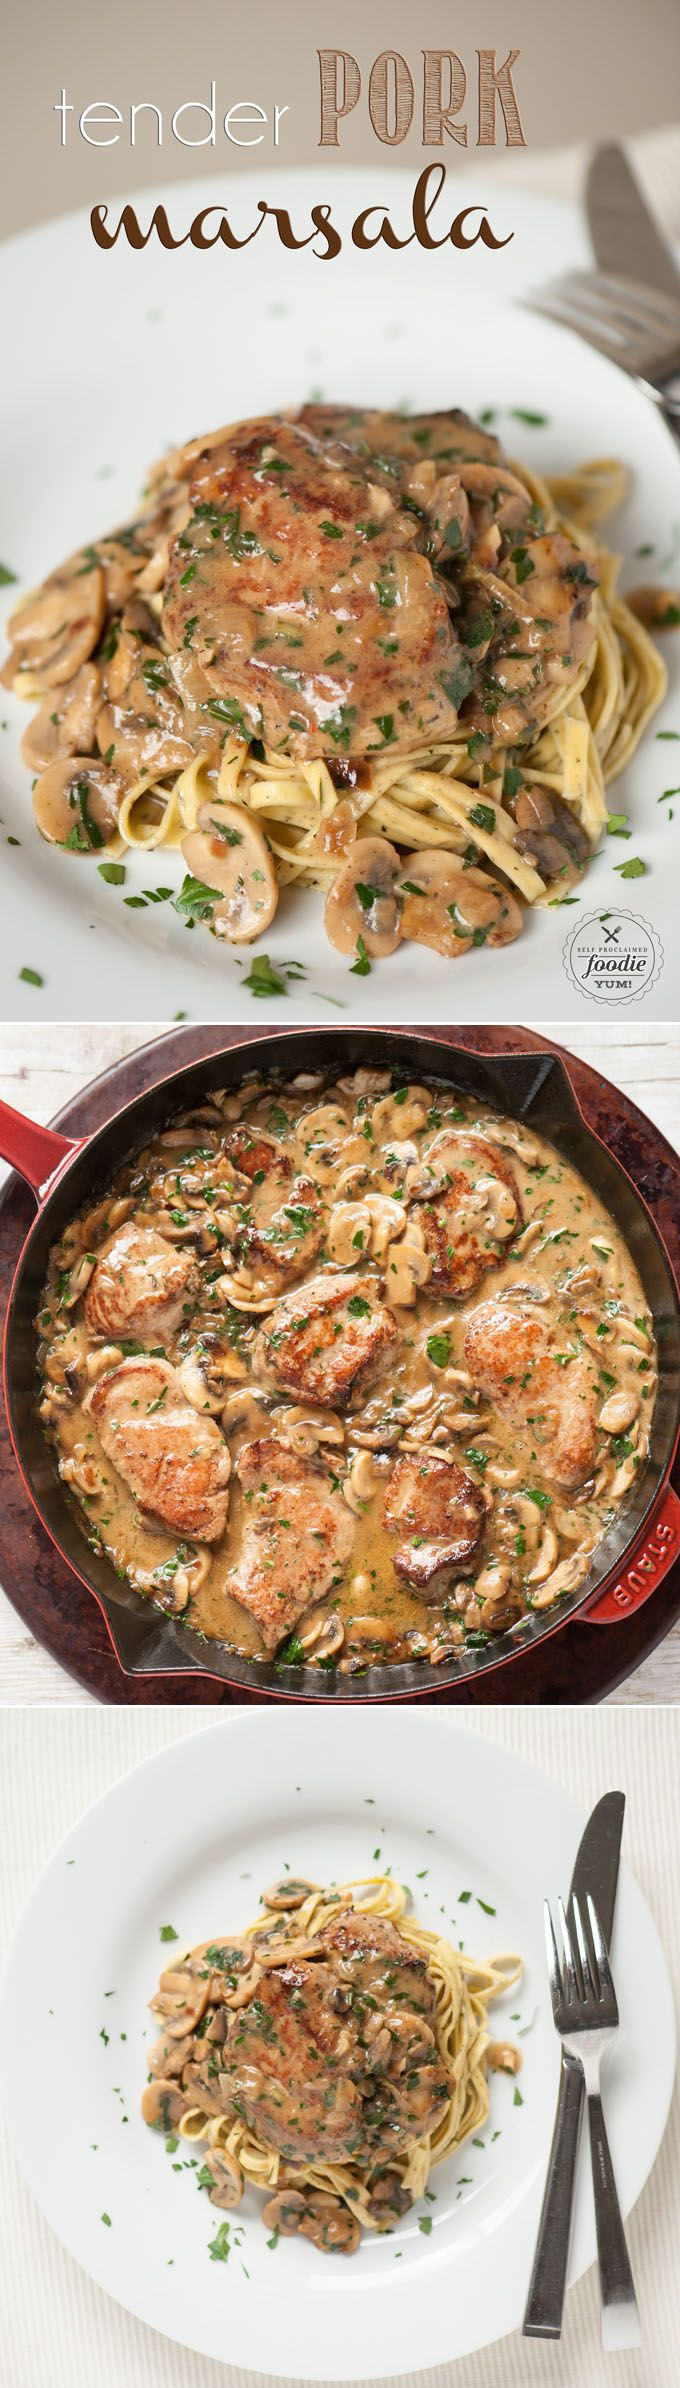 Ready in just 30 minutes, Tender Pork Marsala made with marinated pork…